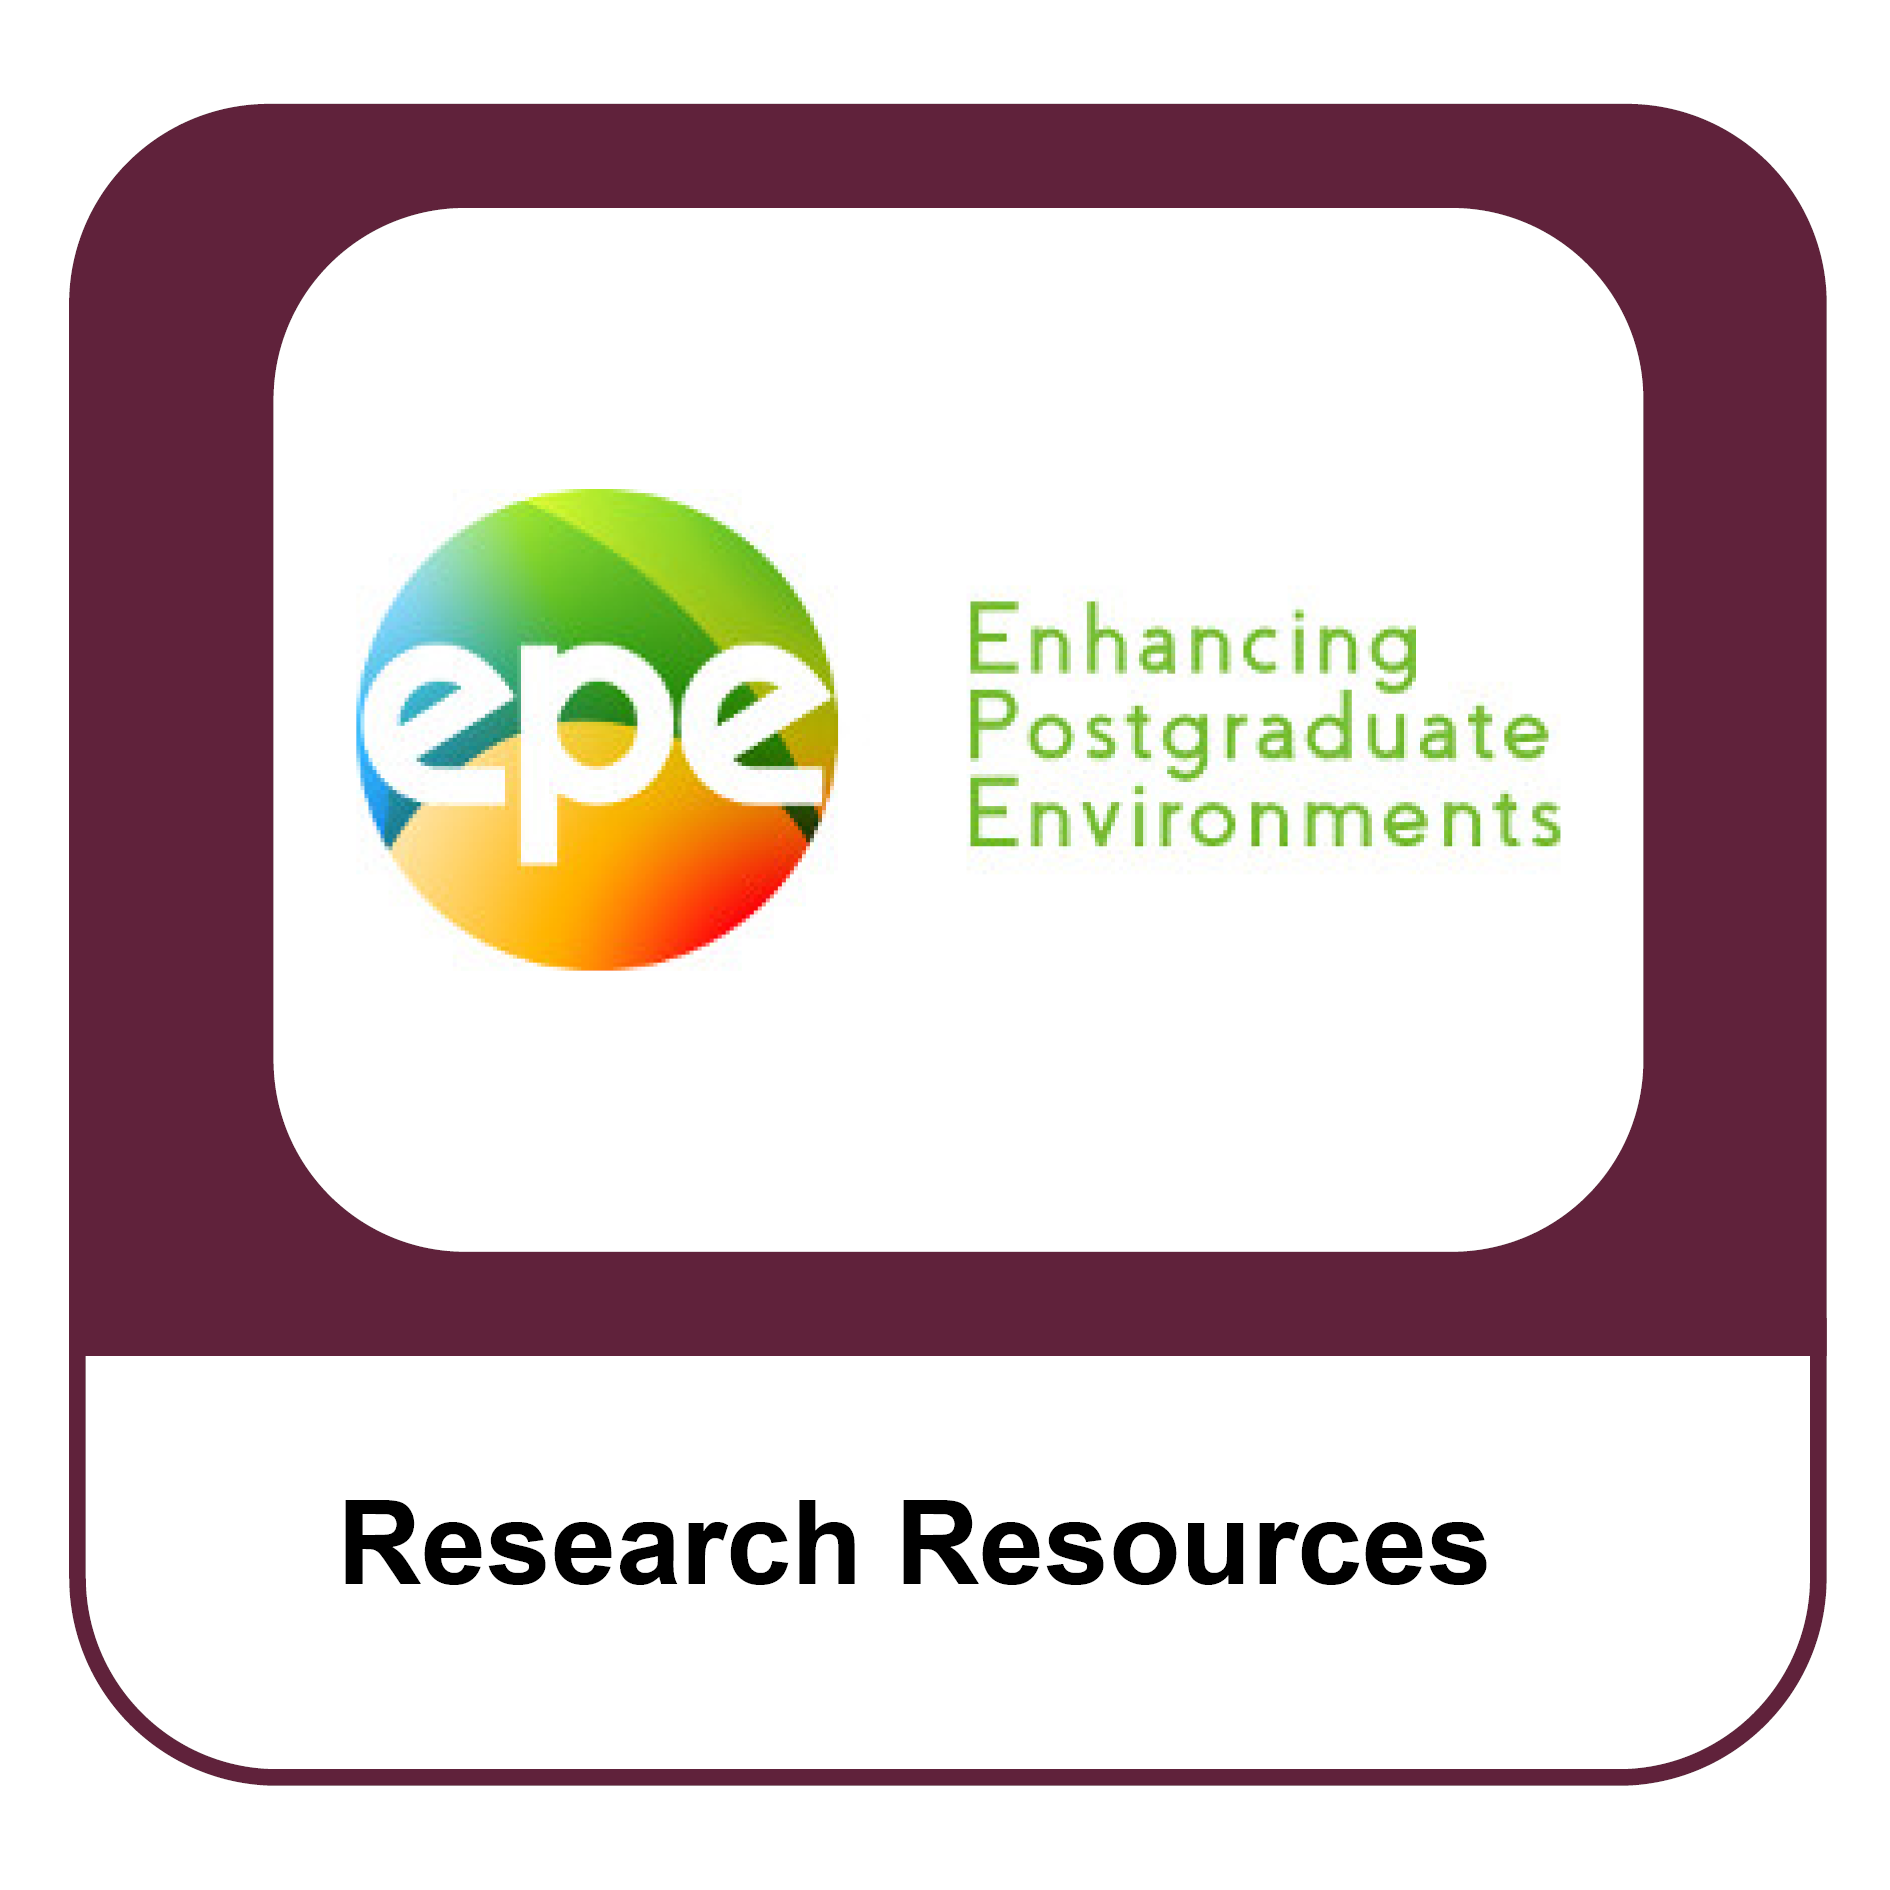 EPE icon resources.png